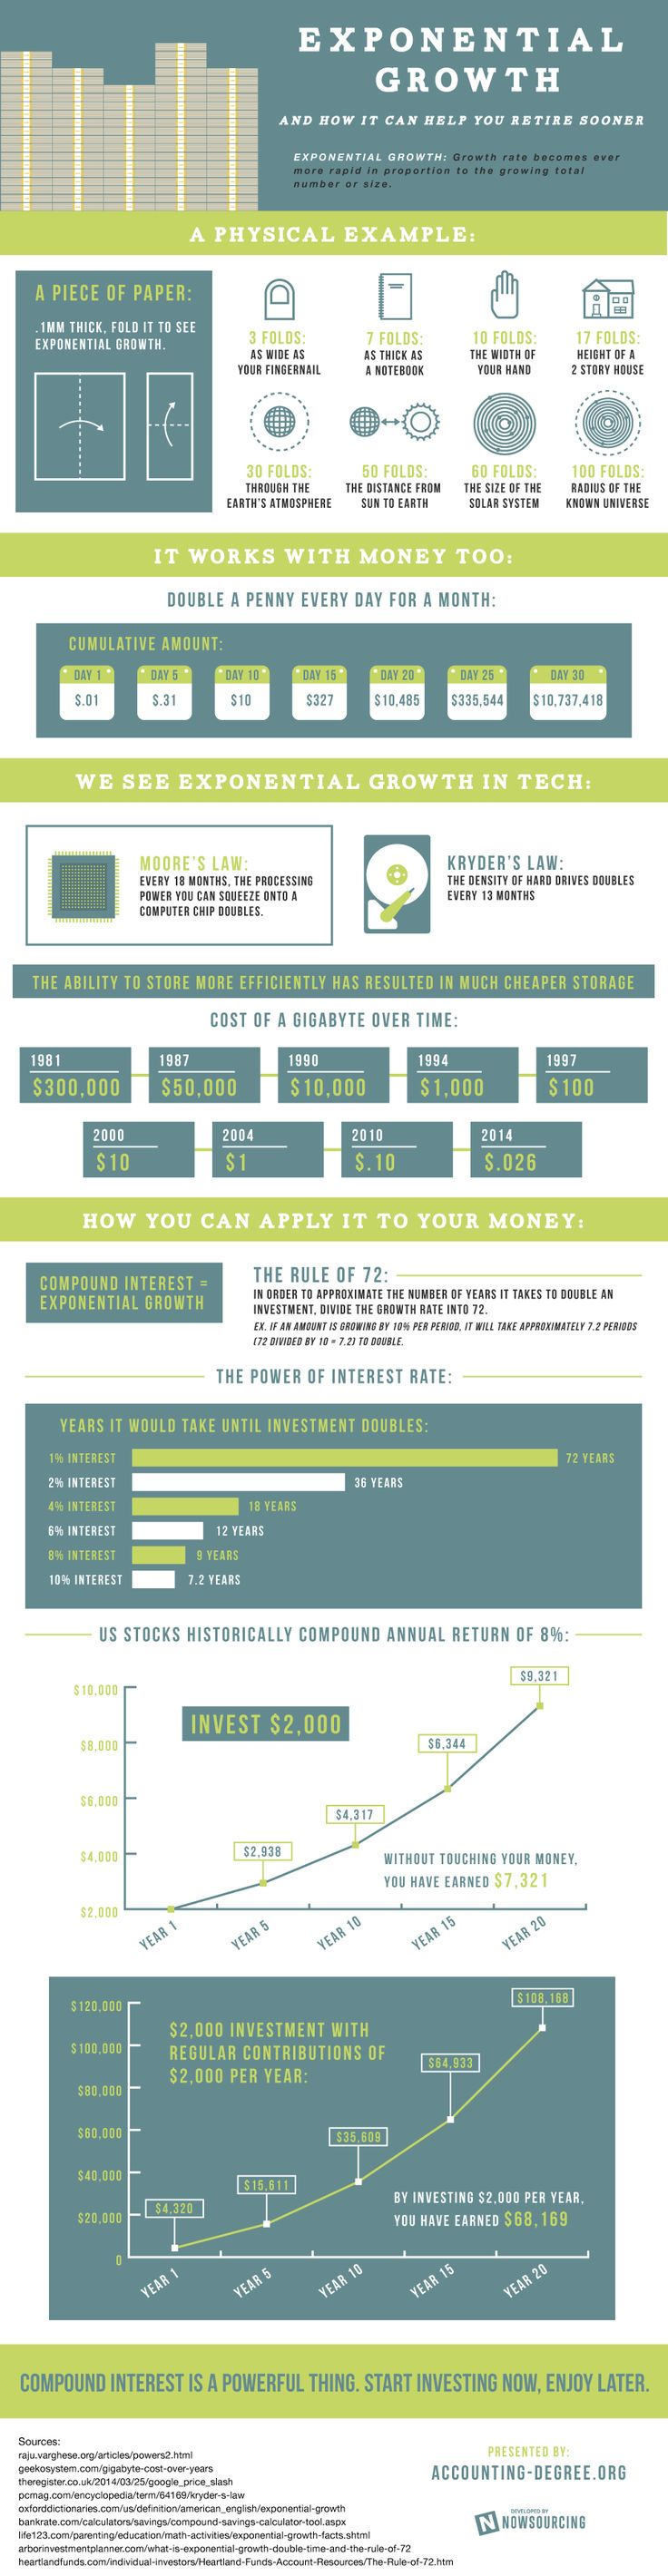 Infographic:  Exponential Growth  How It Can Help To Retire Sooner [Infographic]